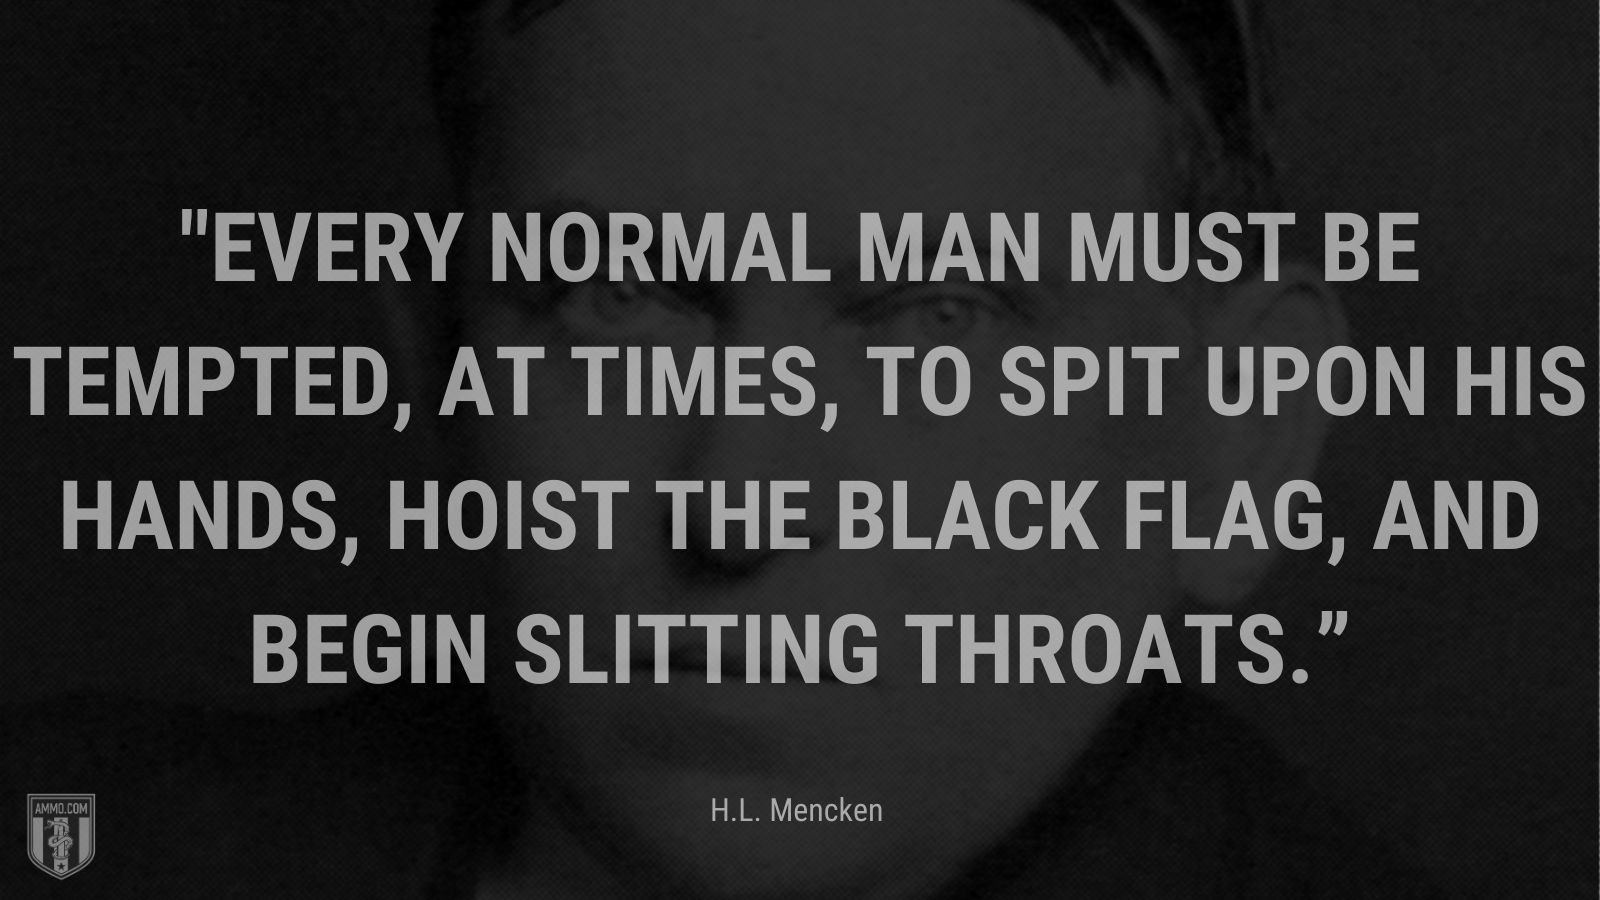 """""""Every normal man must be tempted, at times, to spit upon his hands, hoist the black flag, and begin slitting throats."""" - H.L. Mencken, Prejudices, First Series"""